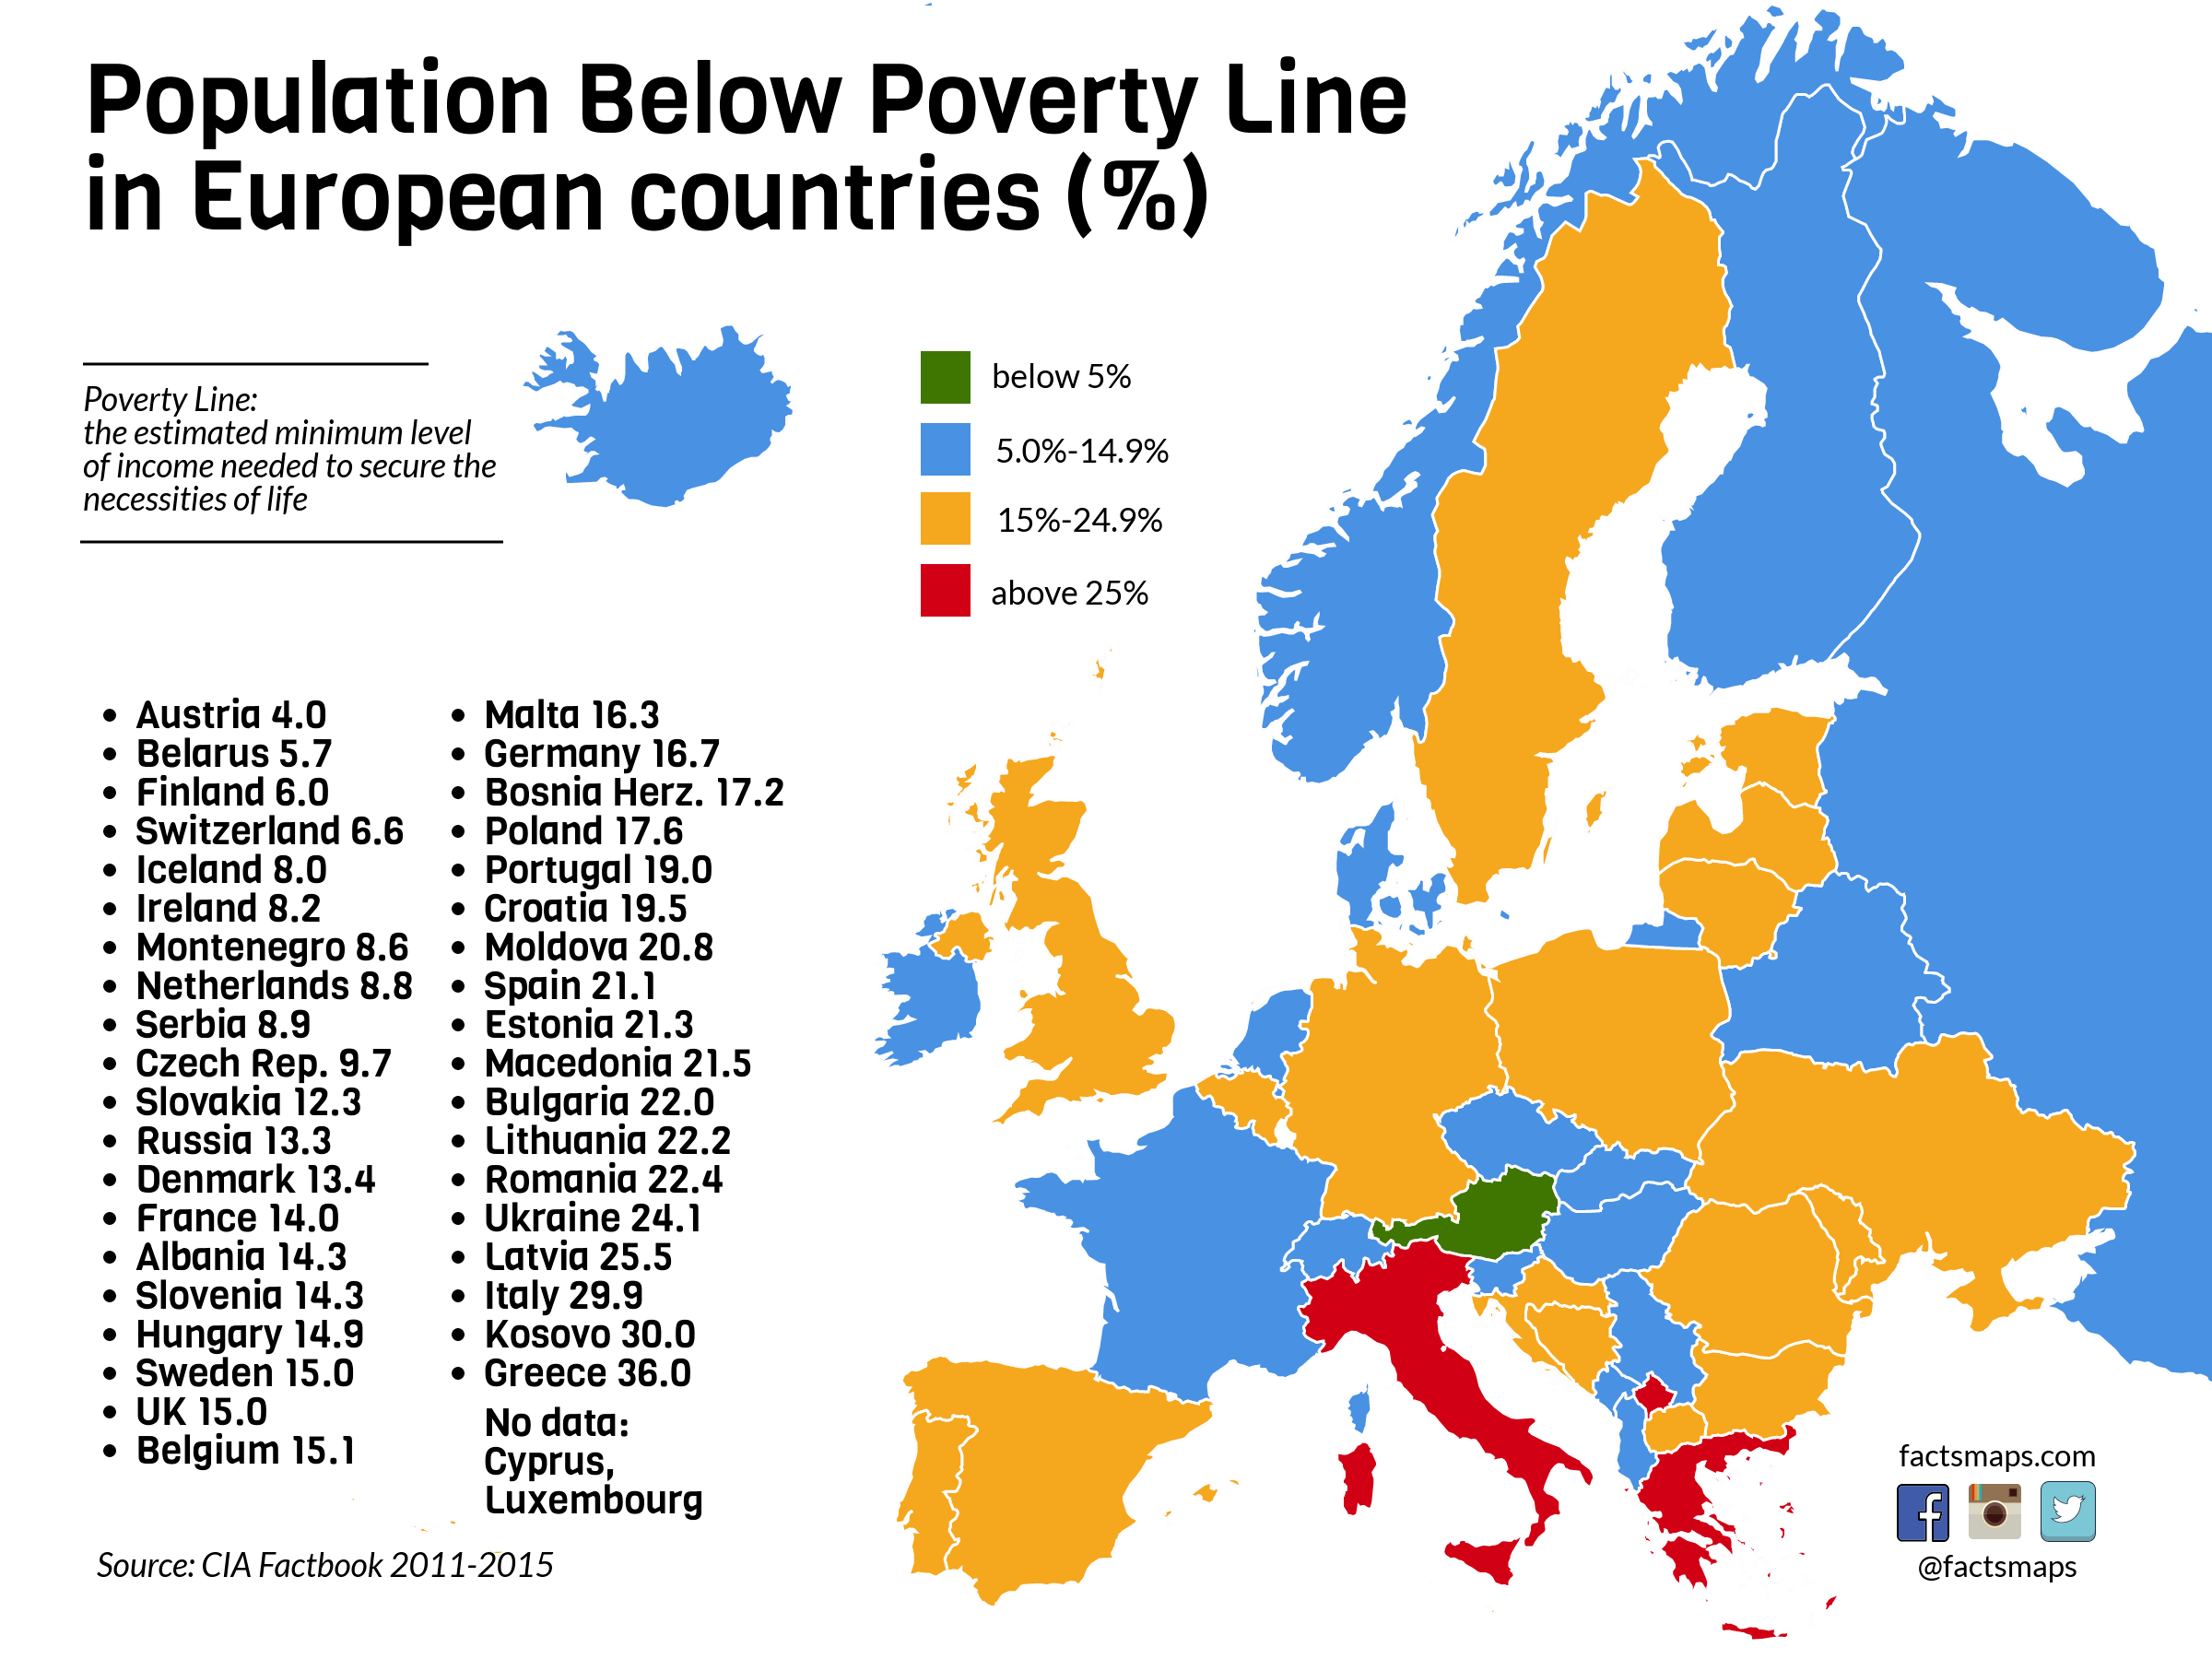 European Union Countries List 2020.Population Below Poverty Line In European Countries Factsmaps